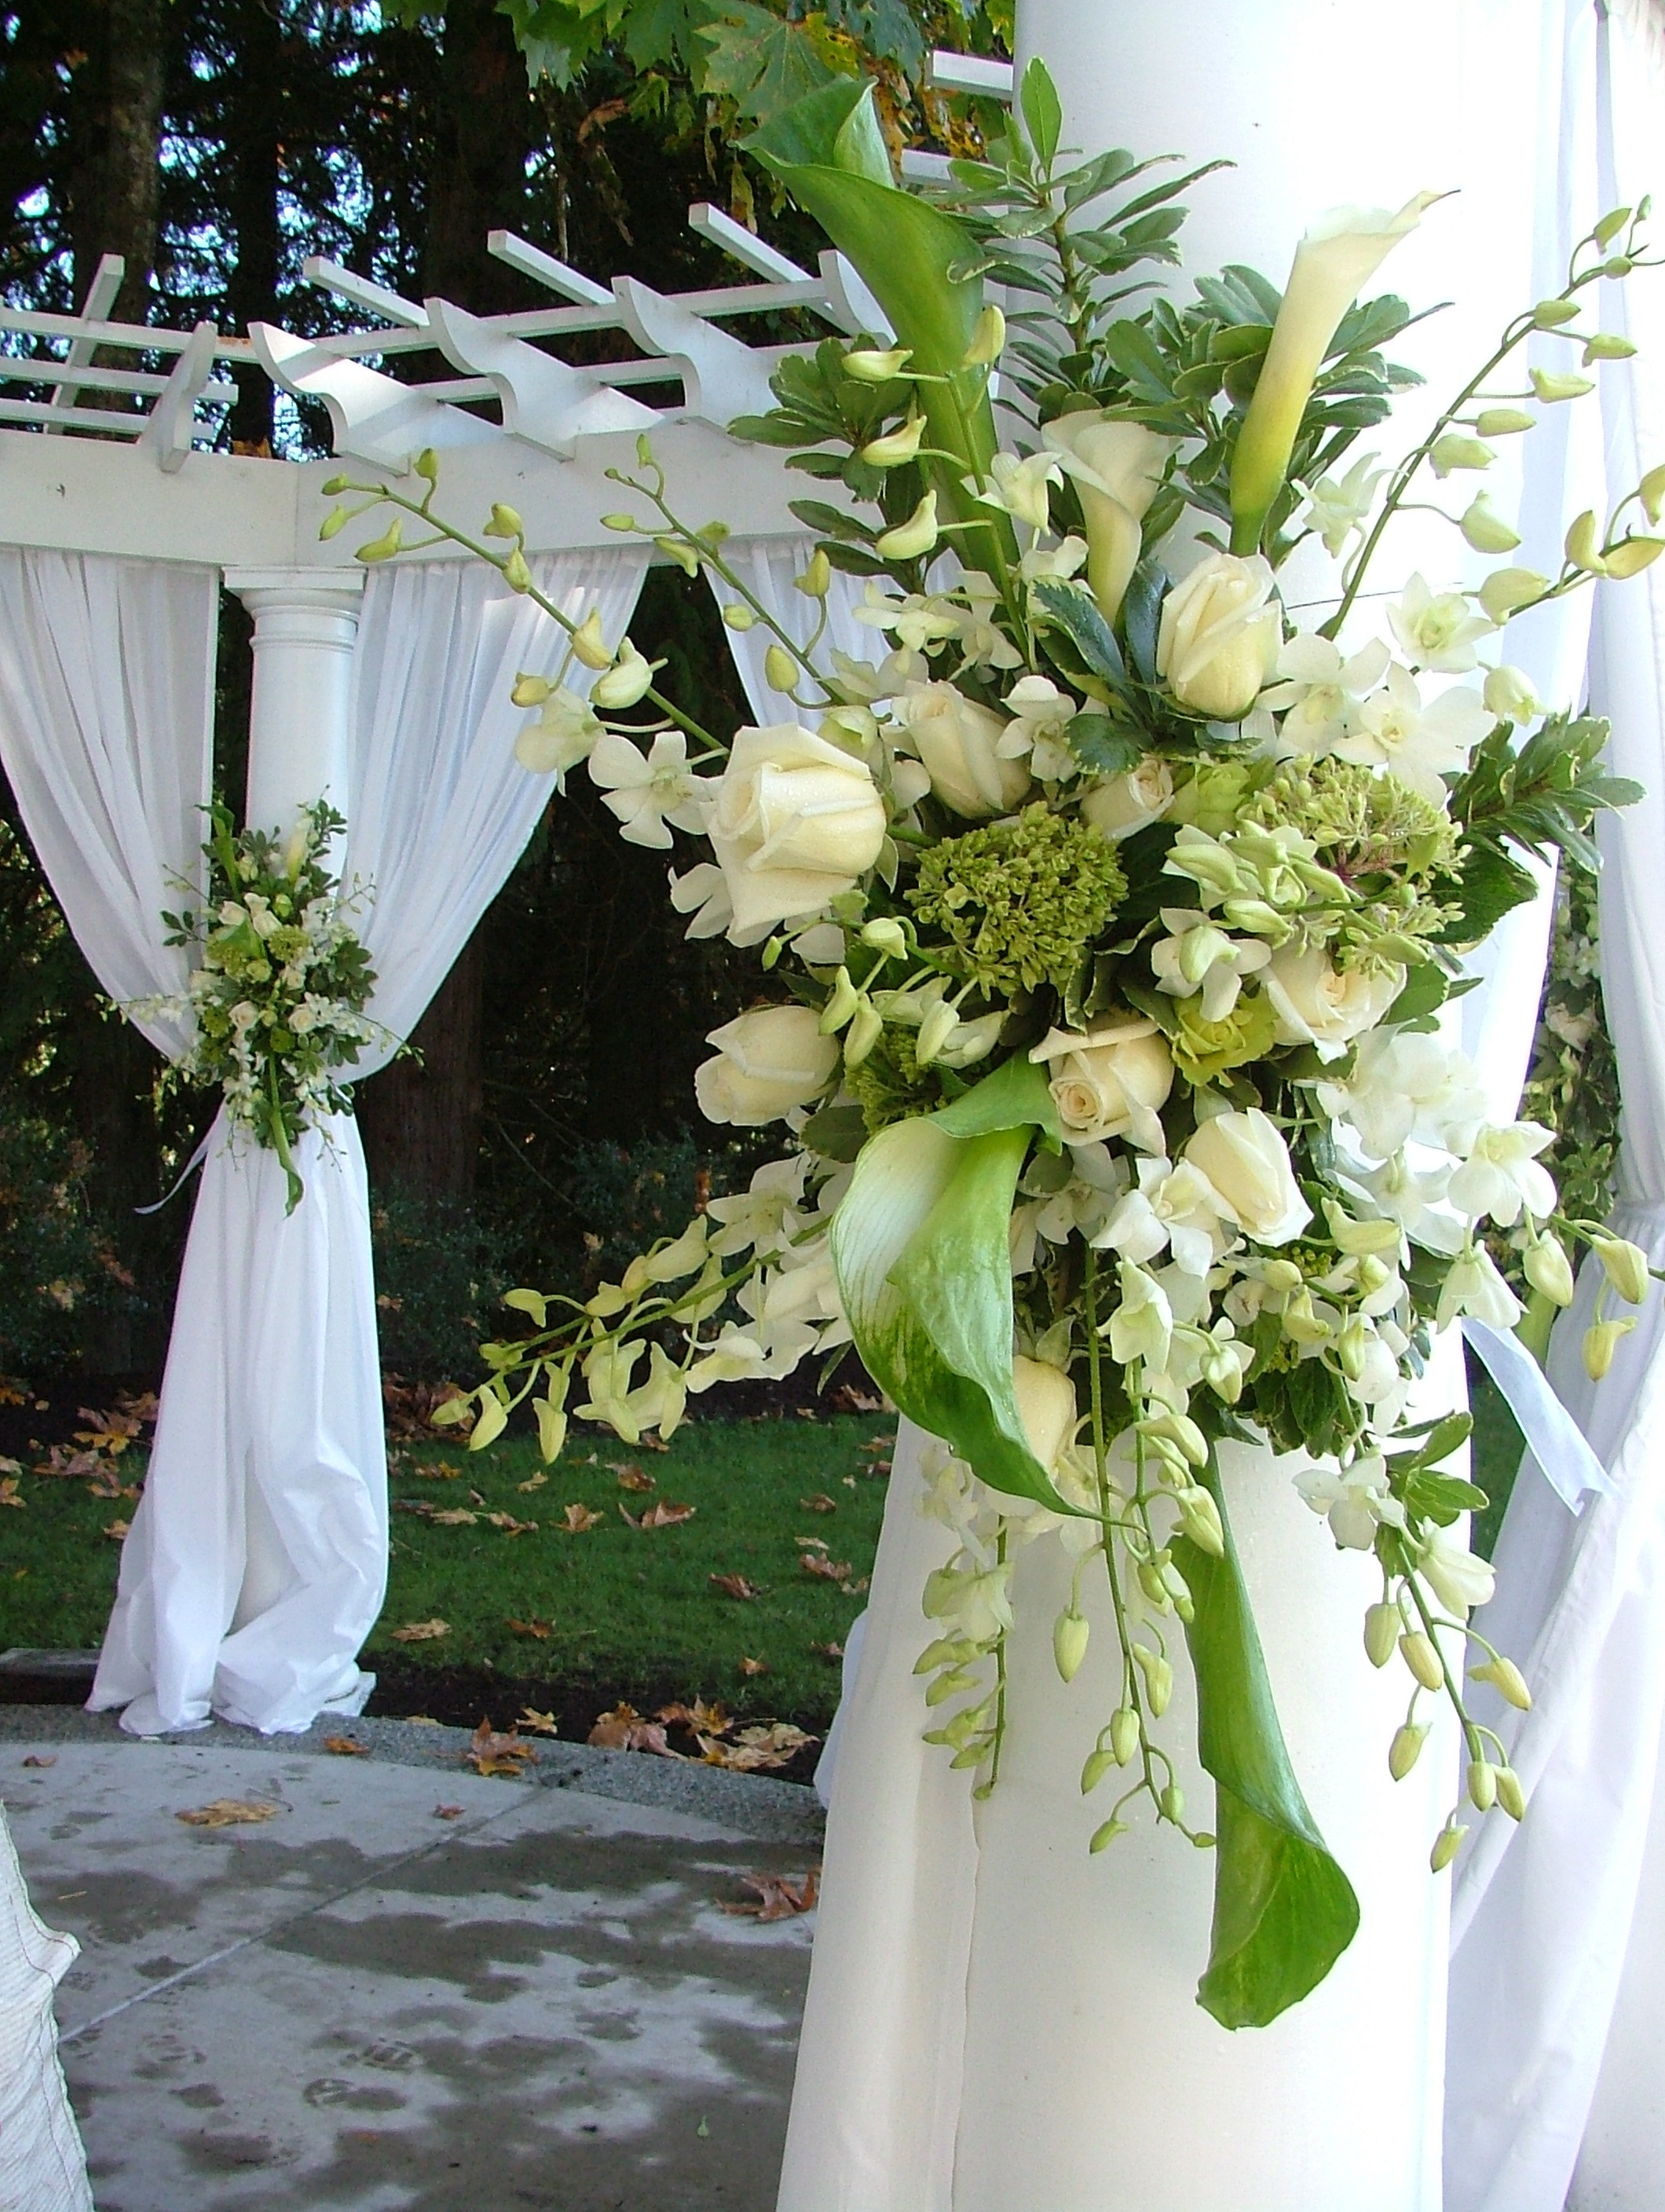 Outstanding Outdoor Wedding Decorations Ideas in Green 2120 x 2816 · 1333 kB · jpeg